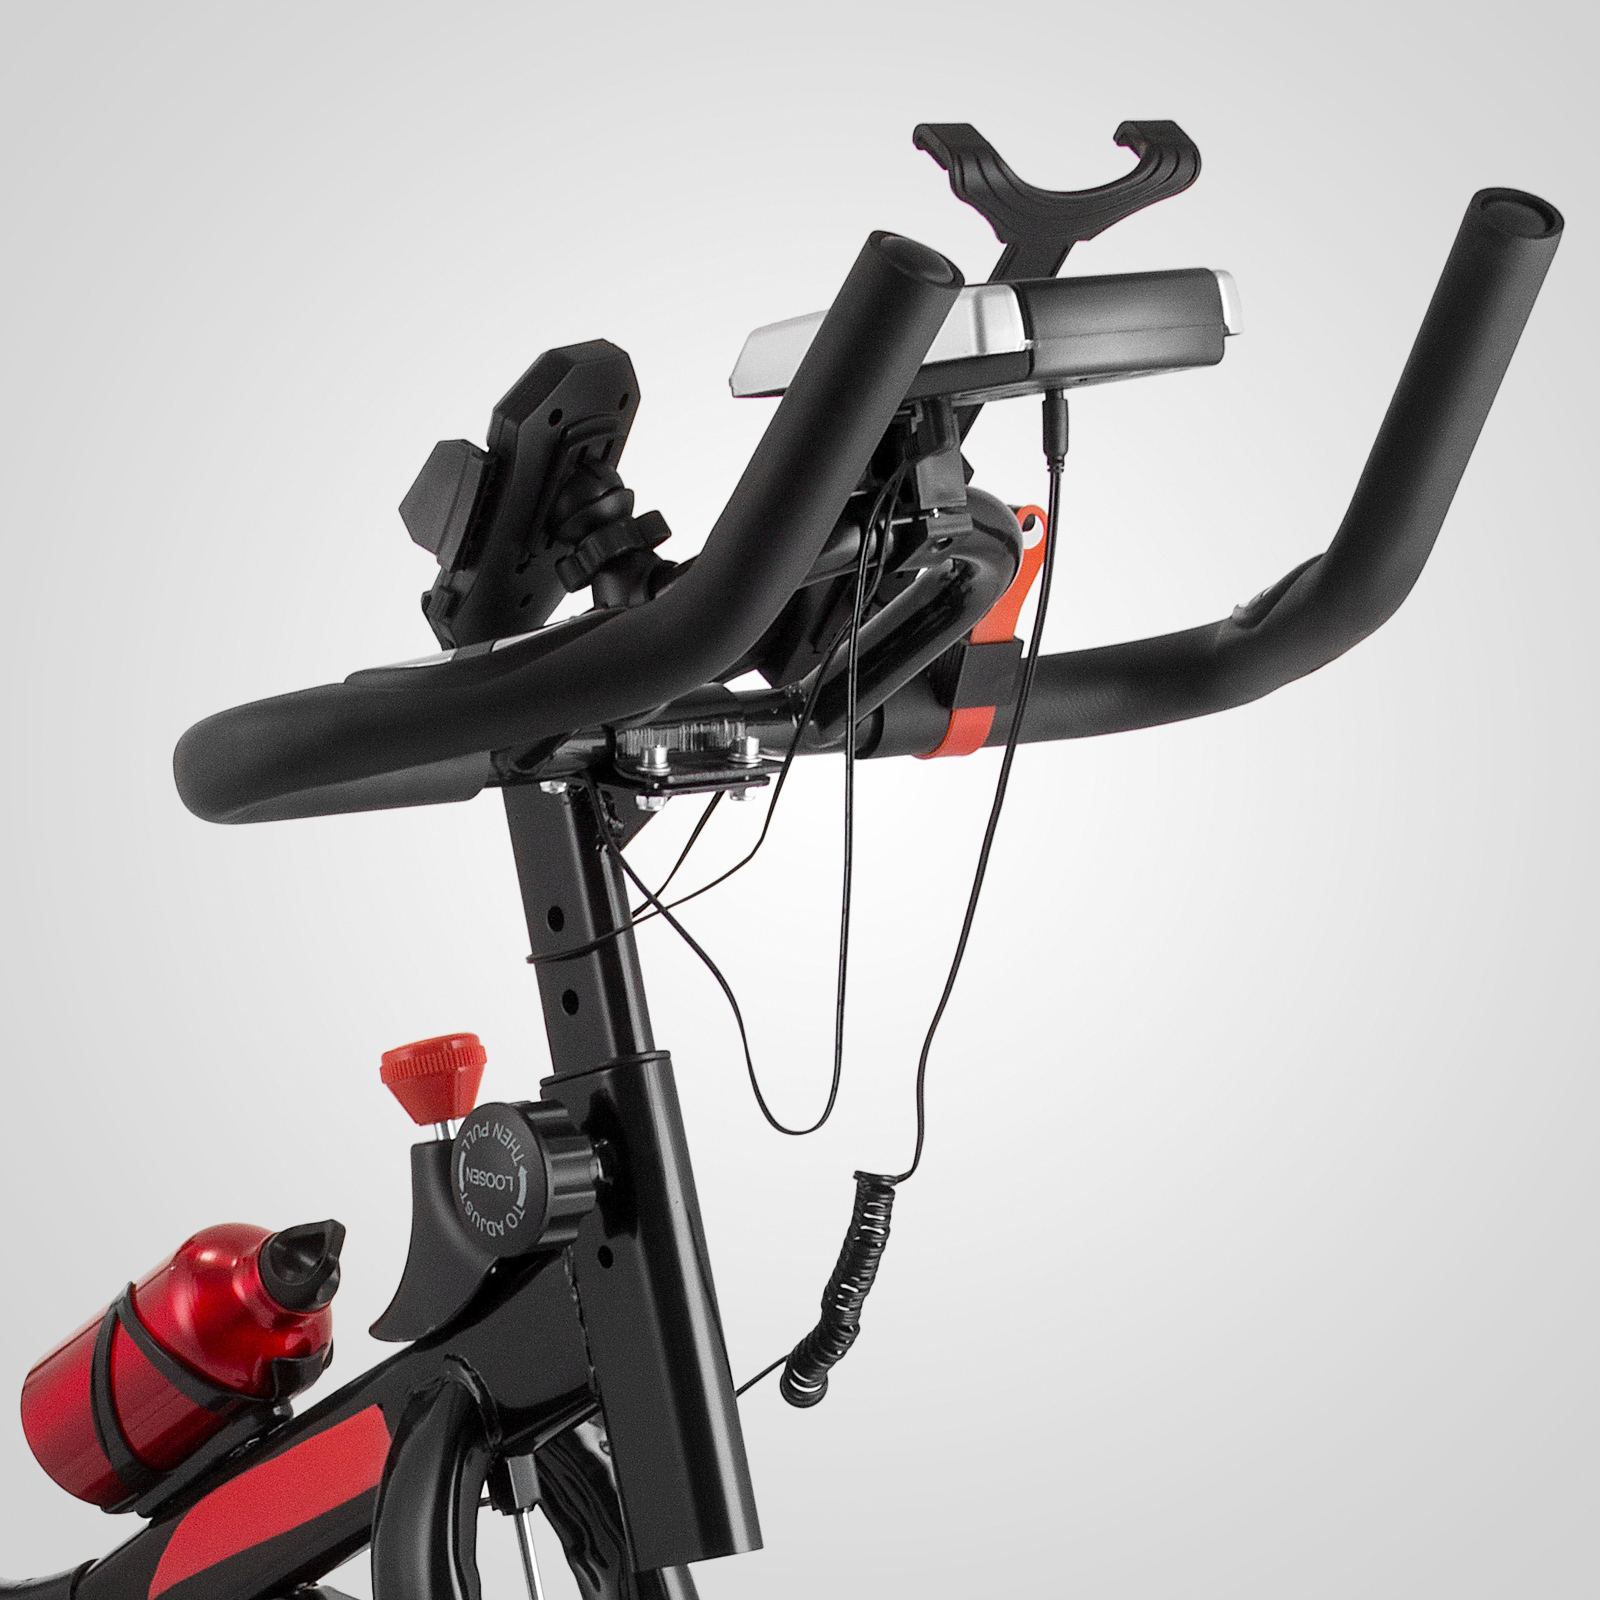 Exercise Bike In Water: Stationary Exercise Bicycle Indoor Bike Water Bottle